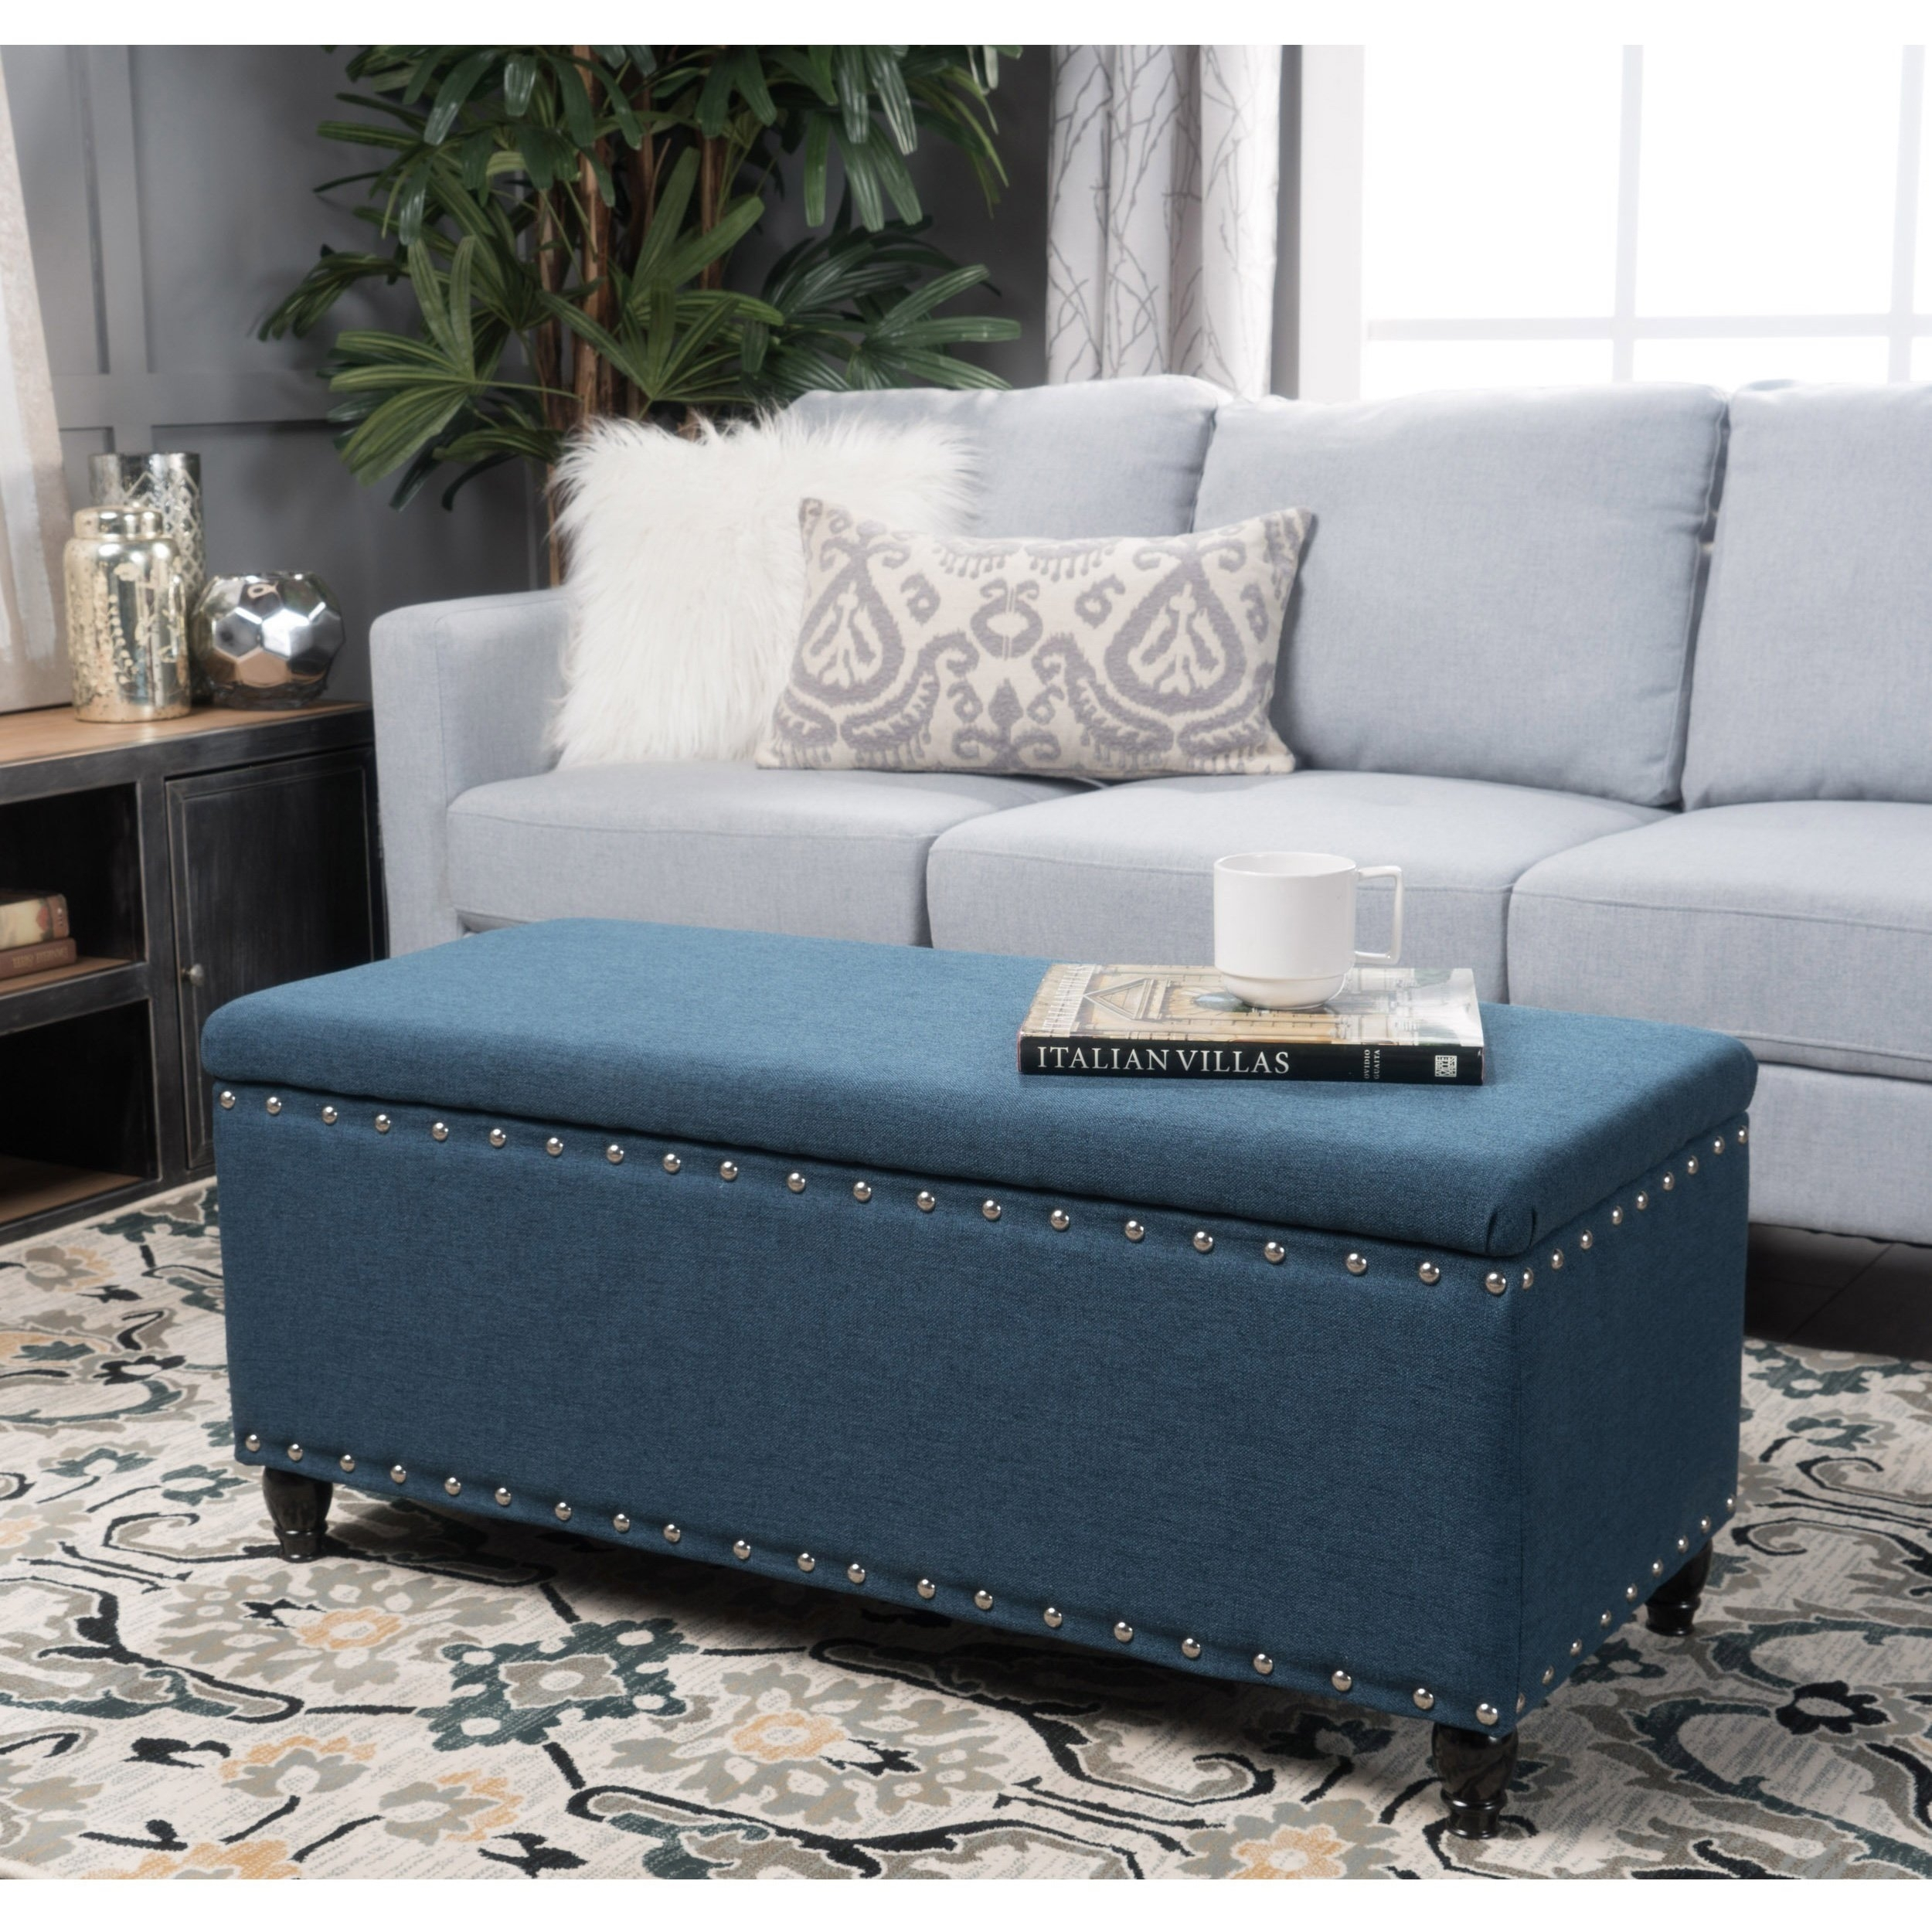 Christopher Knight Home Living Room Furniture For Less Sale Ends throughout Burton Leather 3 Piece Sectionals With Ottoman (Image 6 of 30)